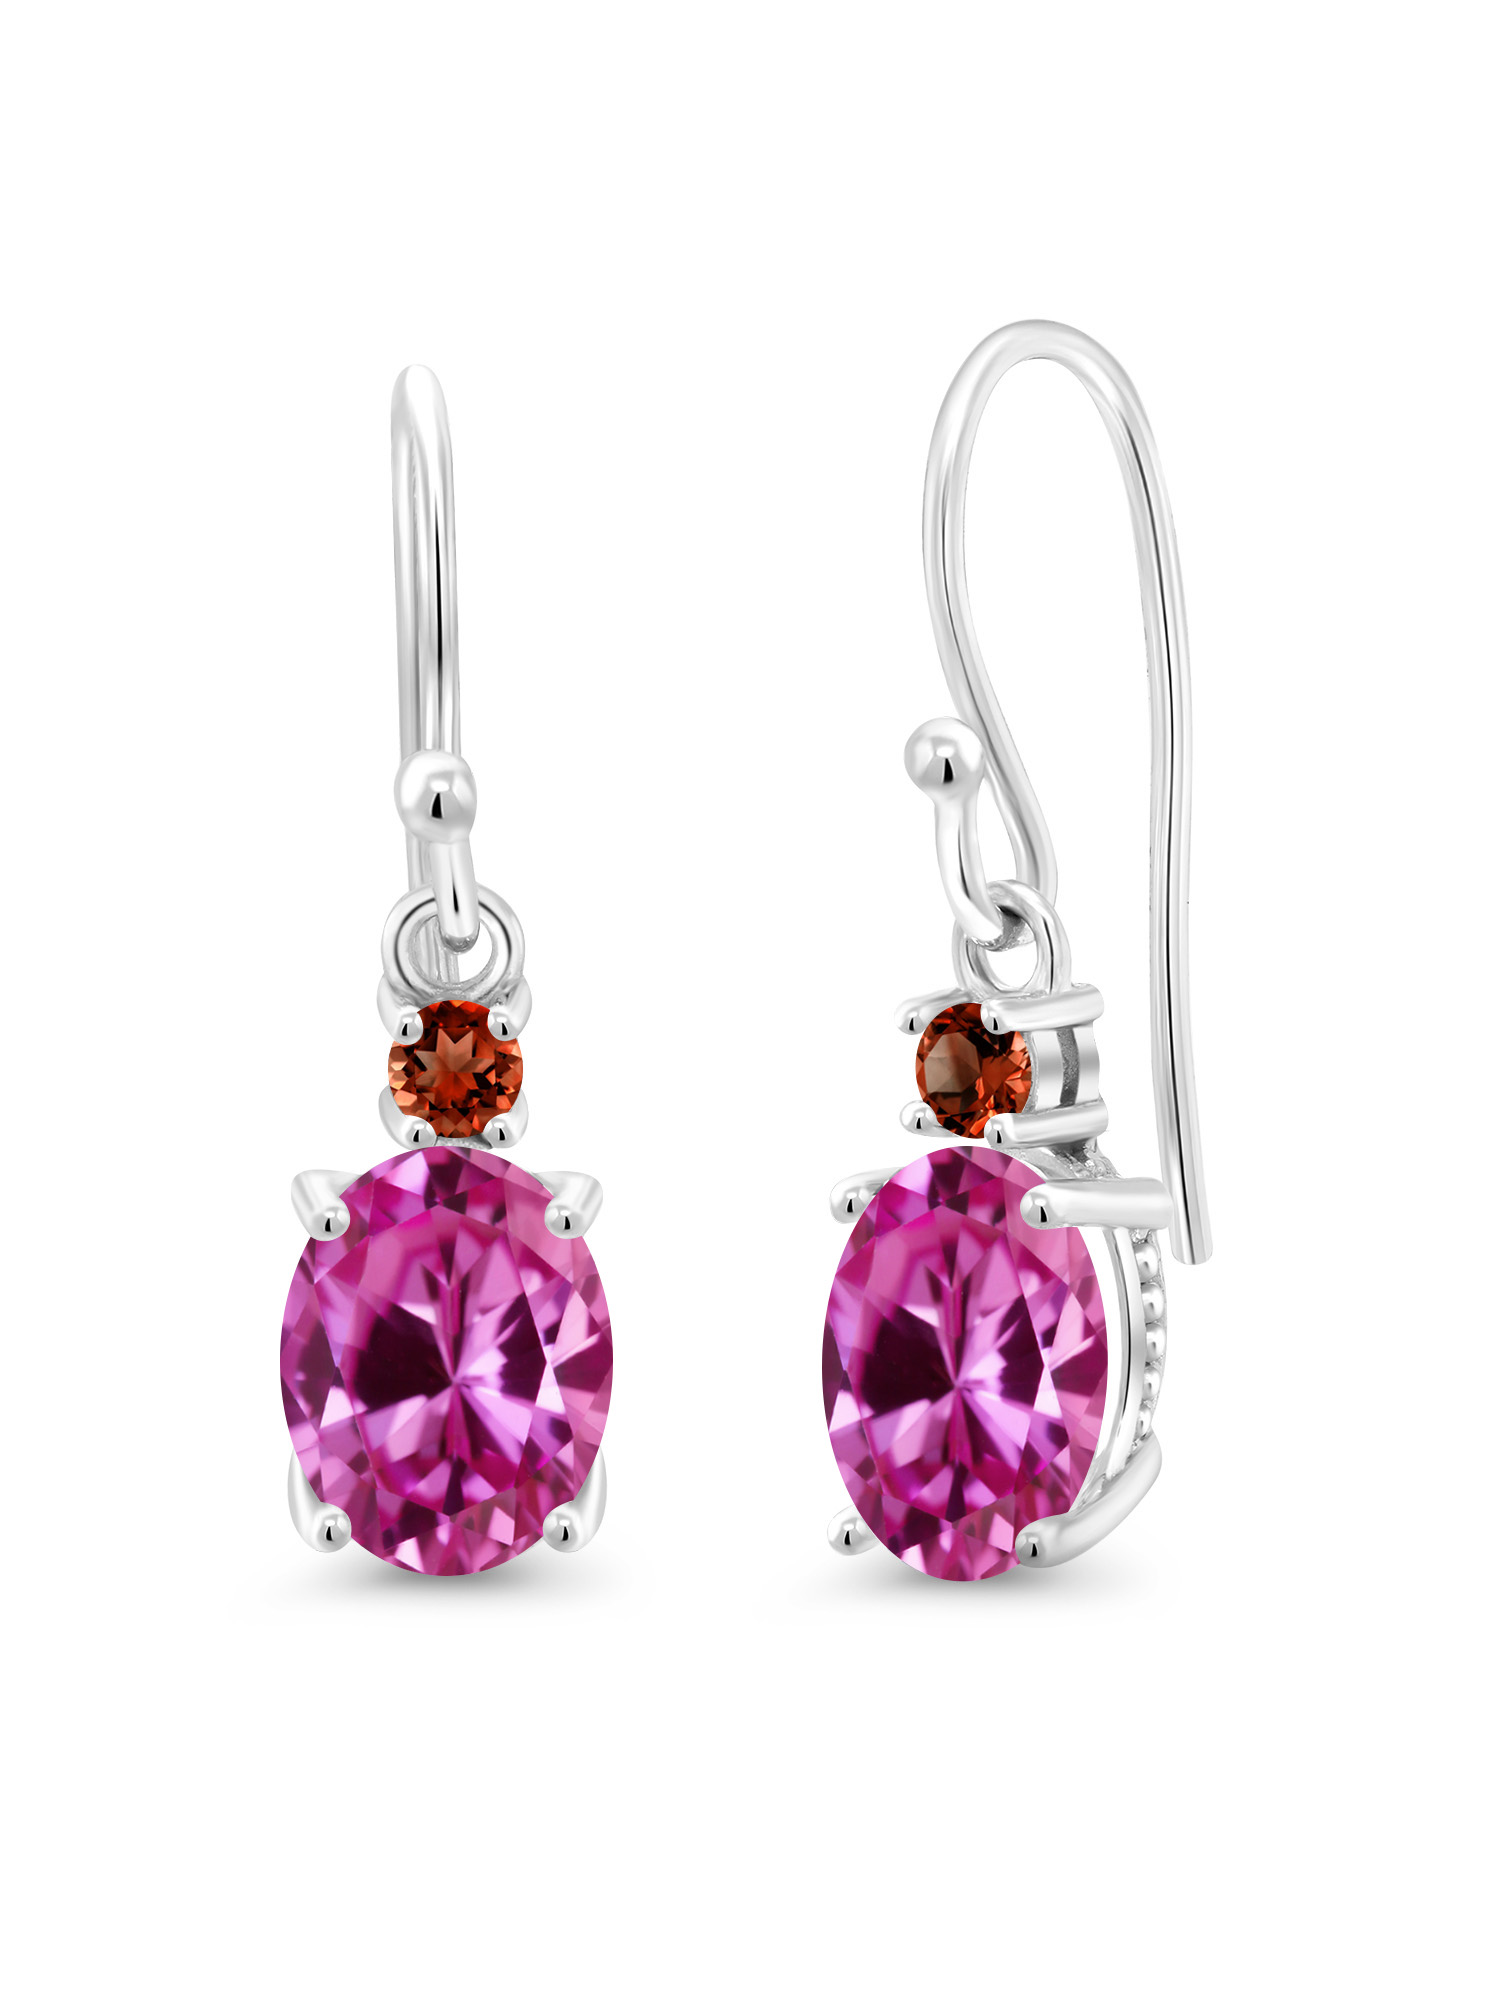 3.48 Ct Oval Pink Created Sapphire Red Garnet 10K White Gold Earrings by